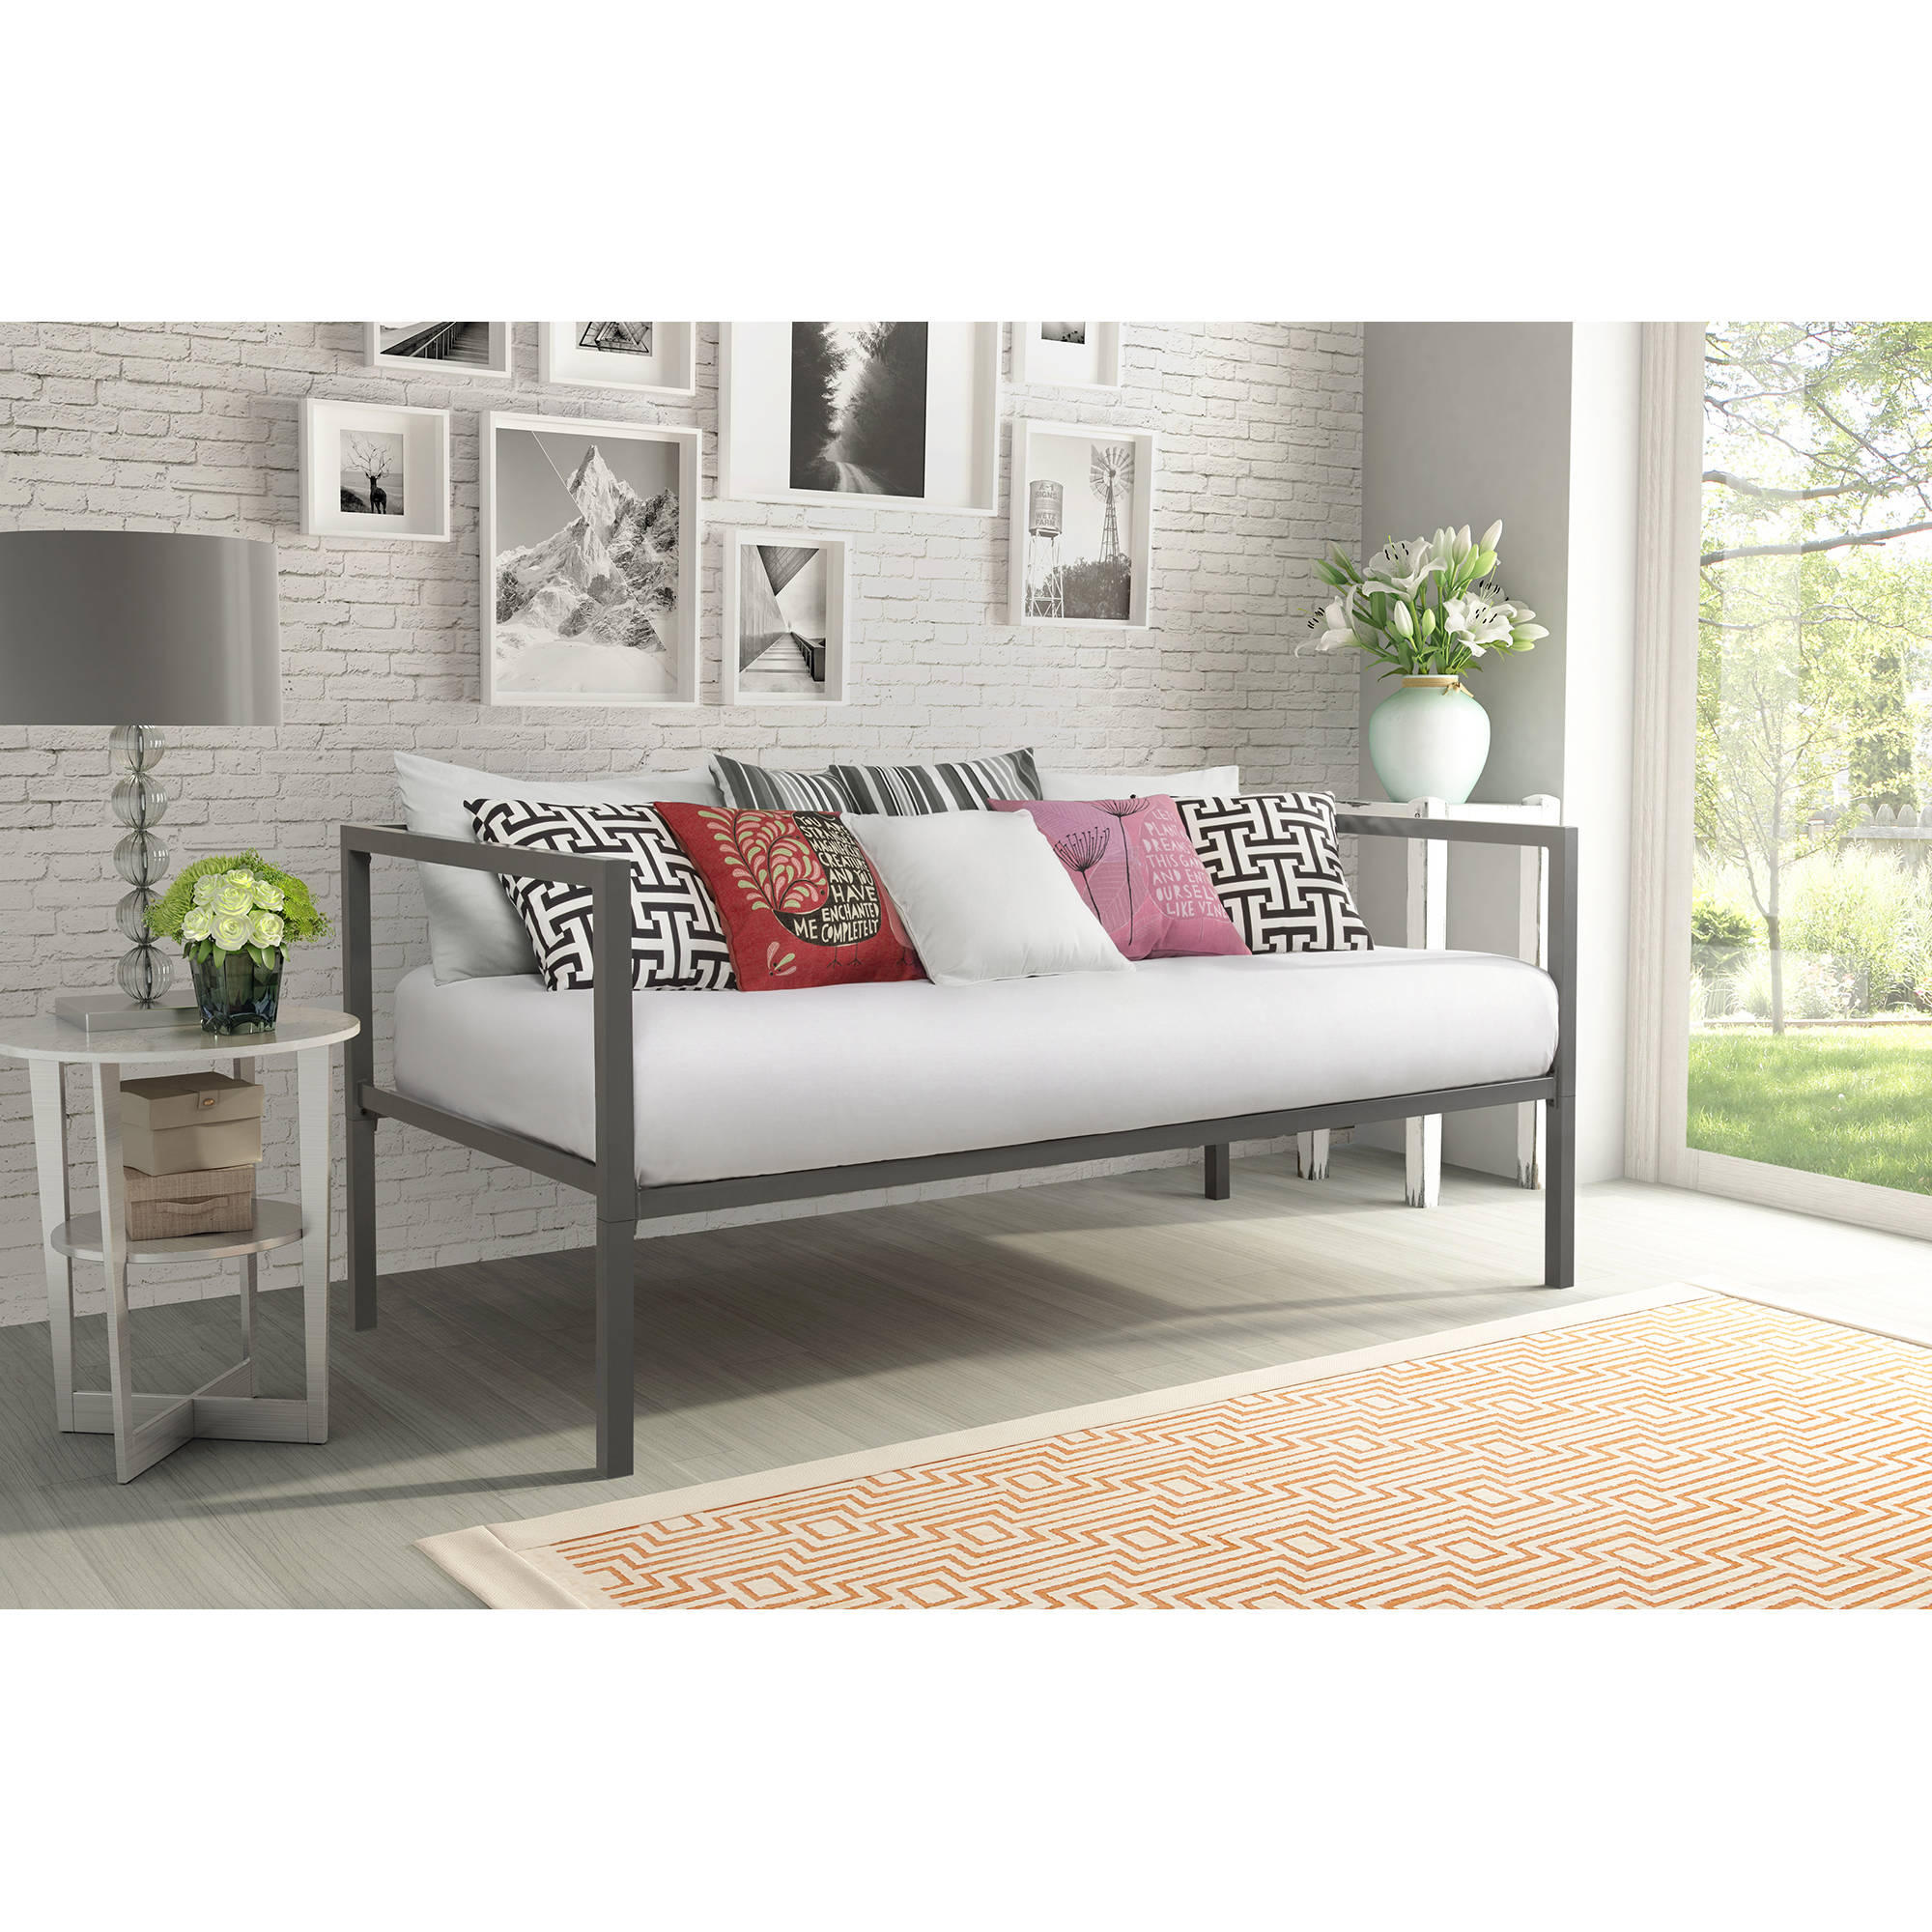 Daybed Beds The Best Deals For Apr 2017